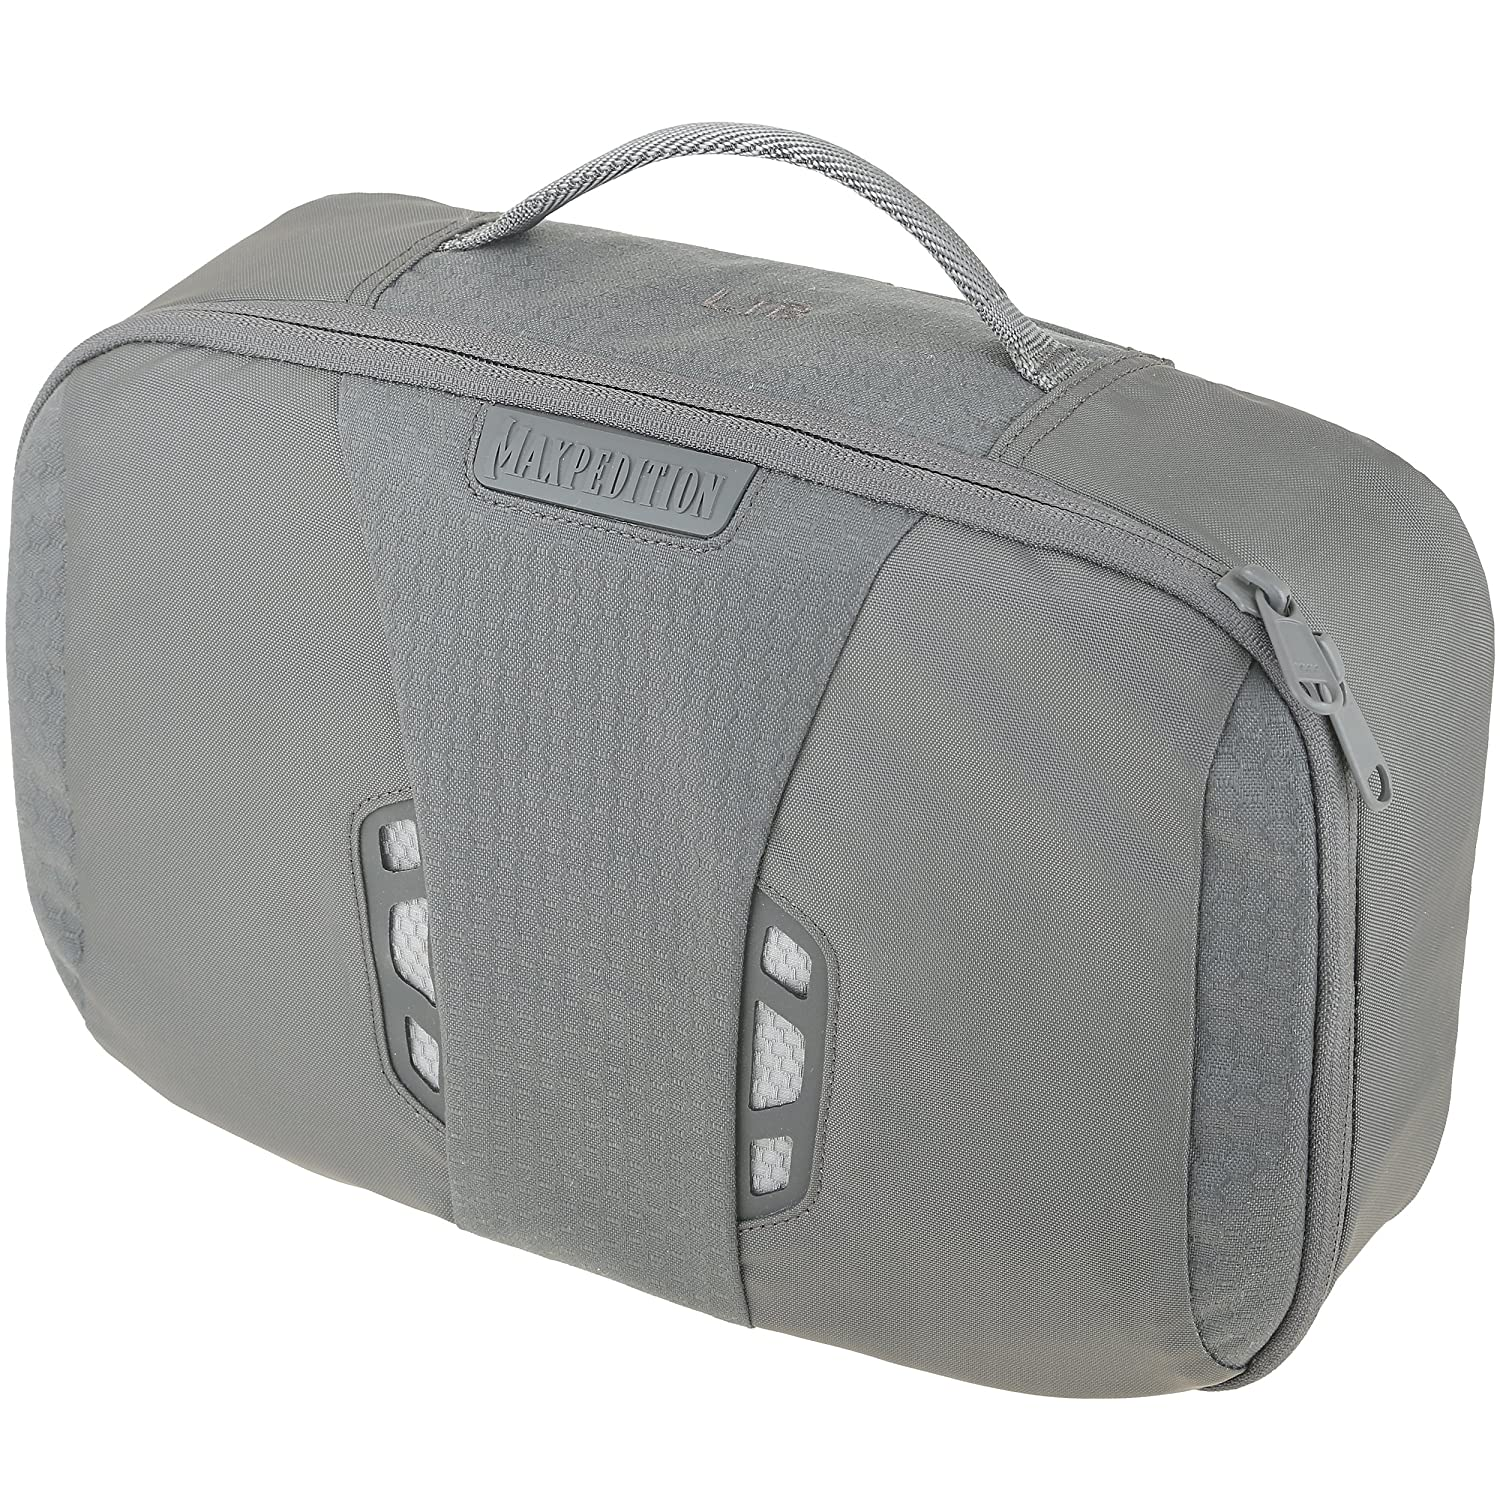 Maxpedition AGR Advanced Gear Research LTB Lightweight Toiletry Bag, grau